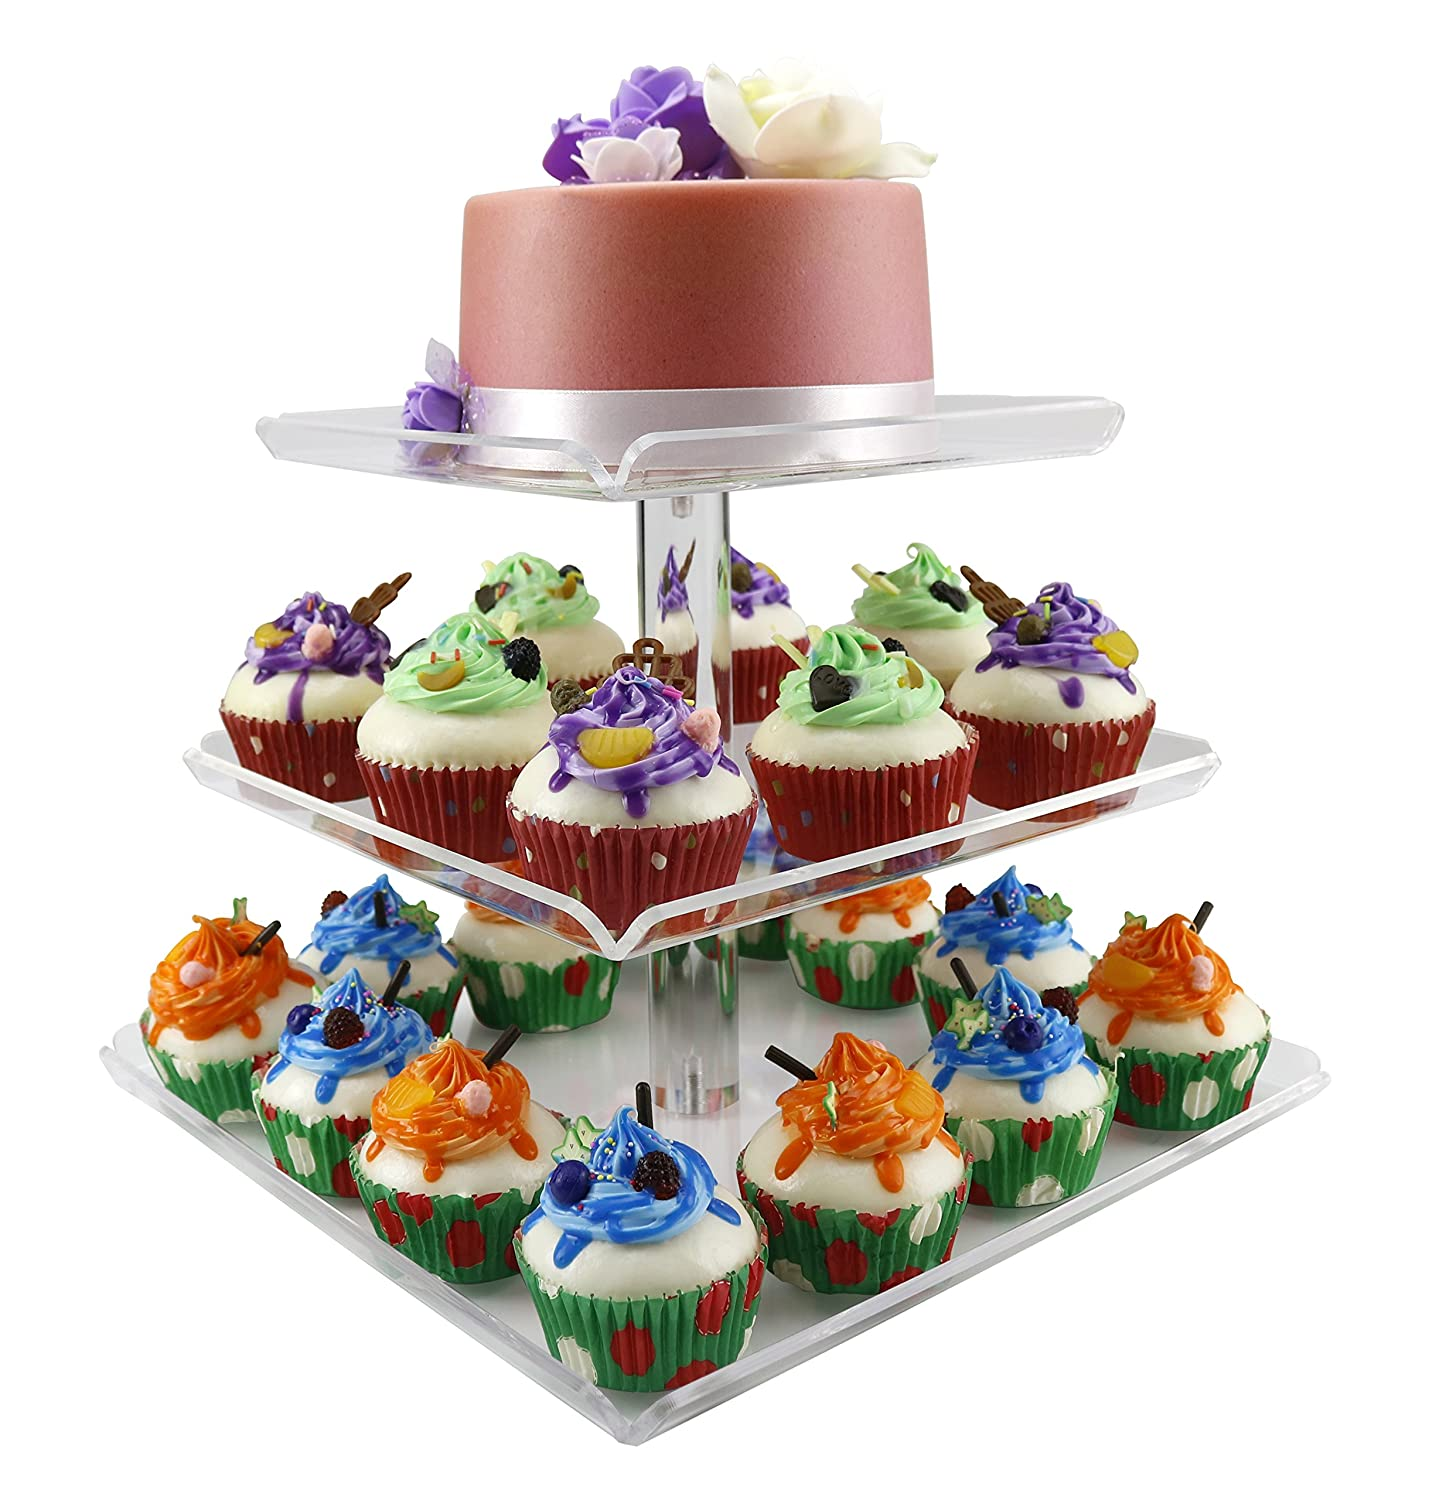 DYCacrlic 3 Tier Cake Cupcakes Stands Display Tree For Baby Family Friends,Cupcake Stand Holder for Parties, Acrylic Wedding Cupcake Tower Stand (Amazing Bubble Rod) DYCacrlic20170624